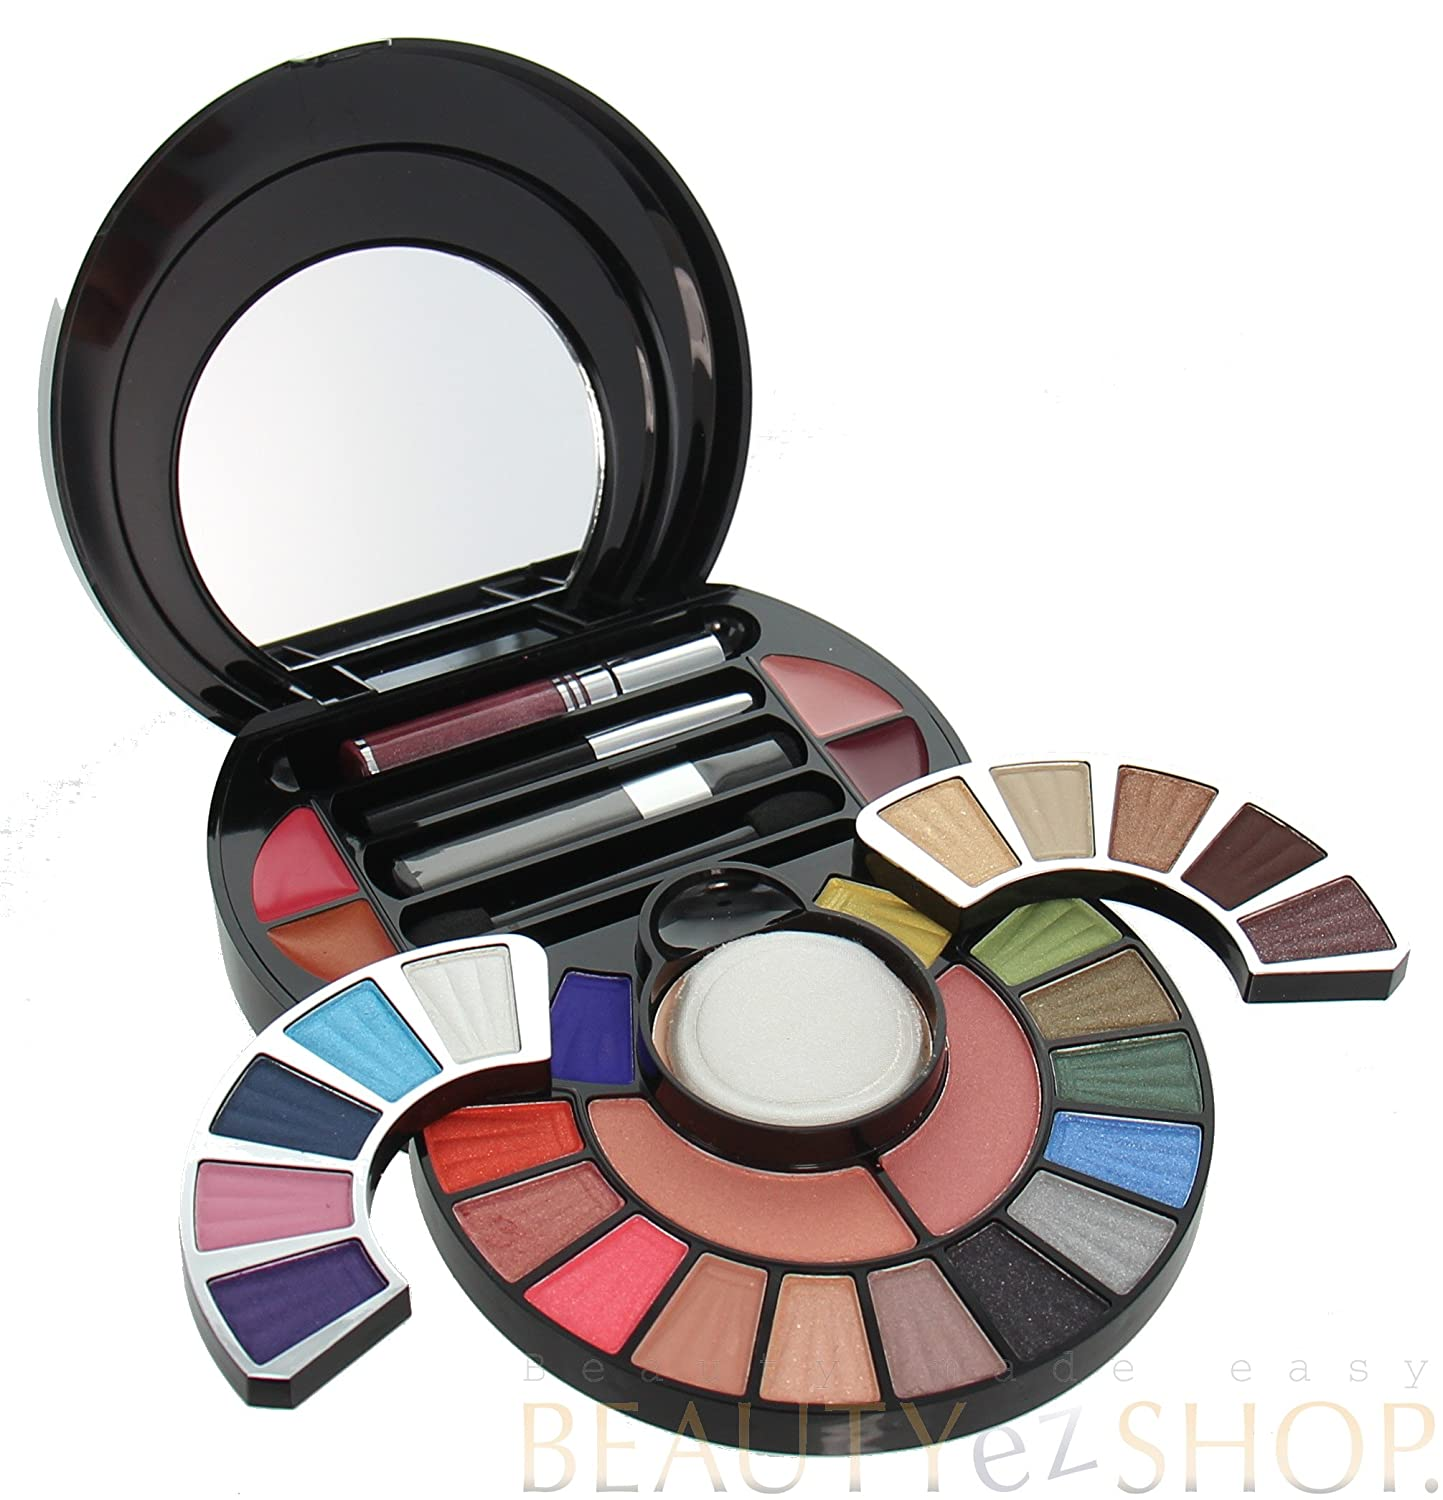 BR-Travel-Size-Eyeshadow-Makeup-Kit-0-5-Oz